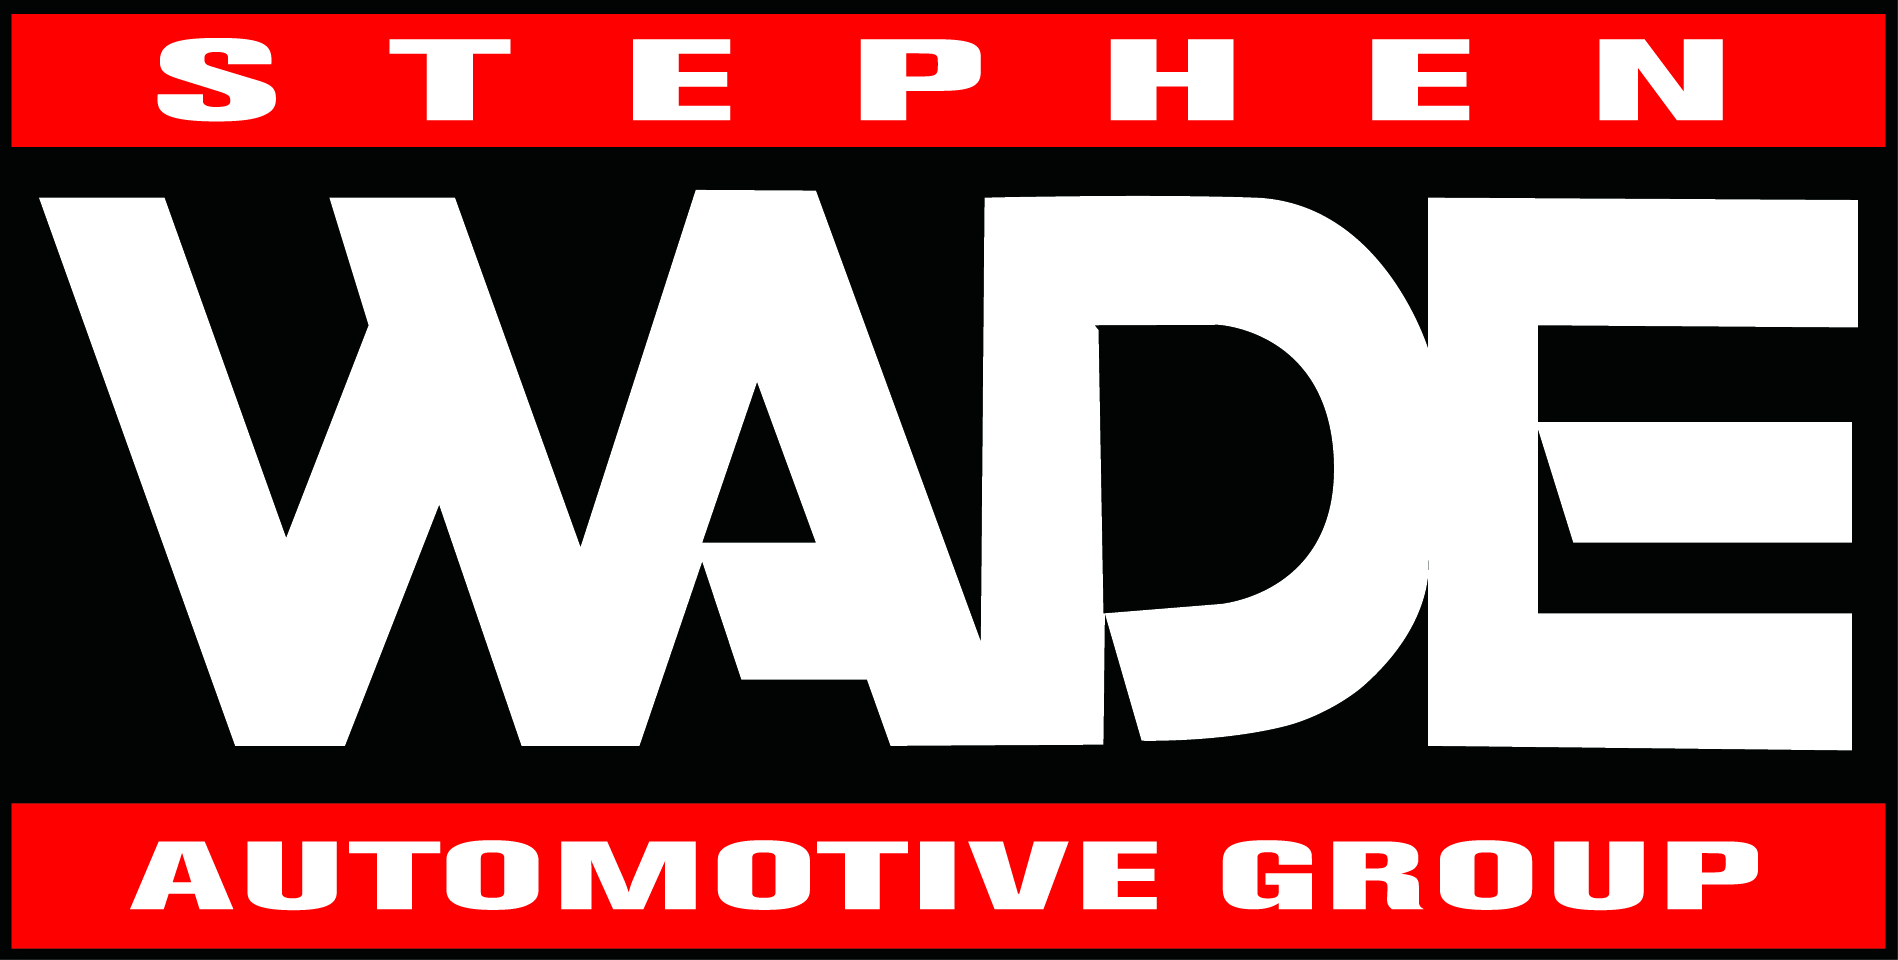 Stephen Wade Automotive Group